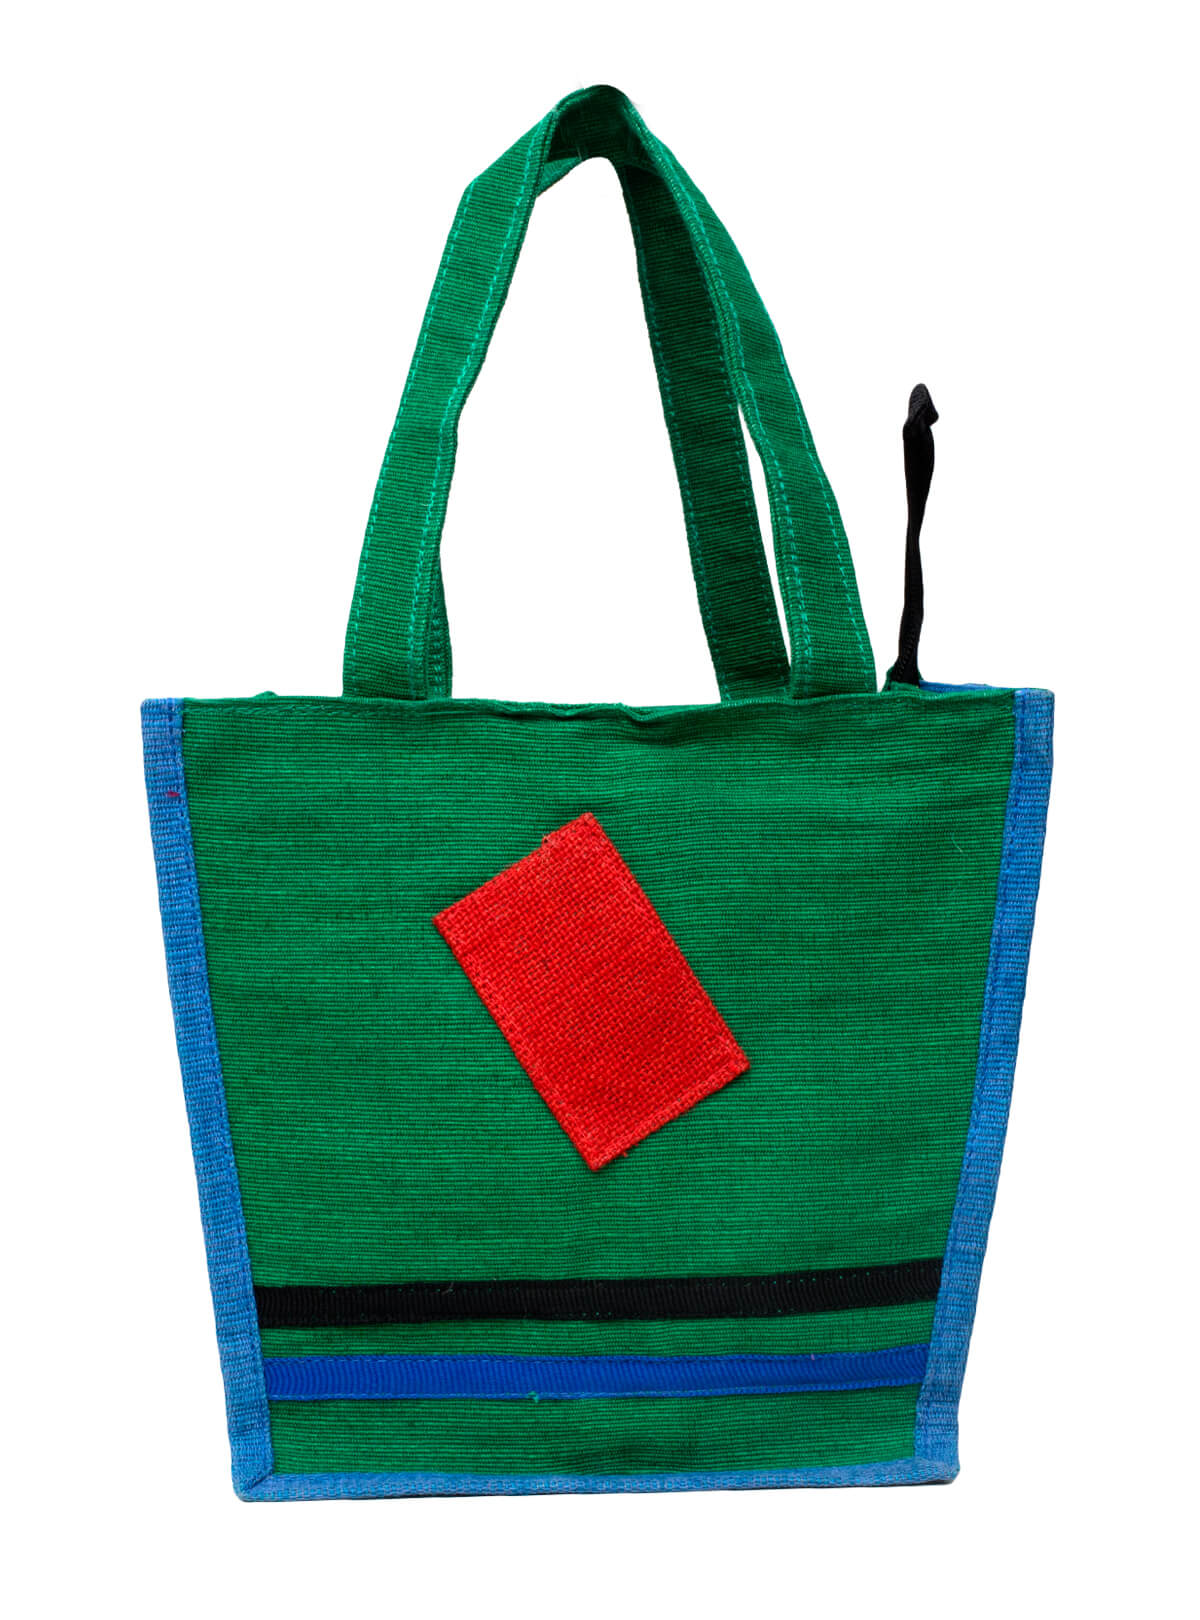 Green Jute Tiffin Bag